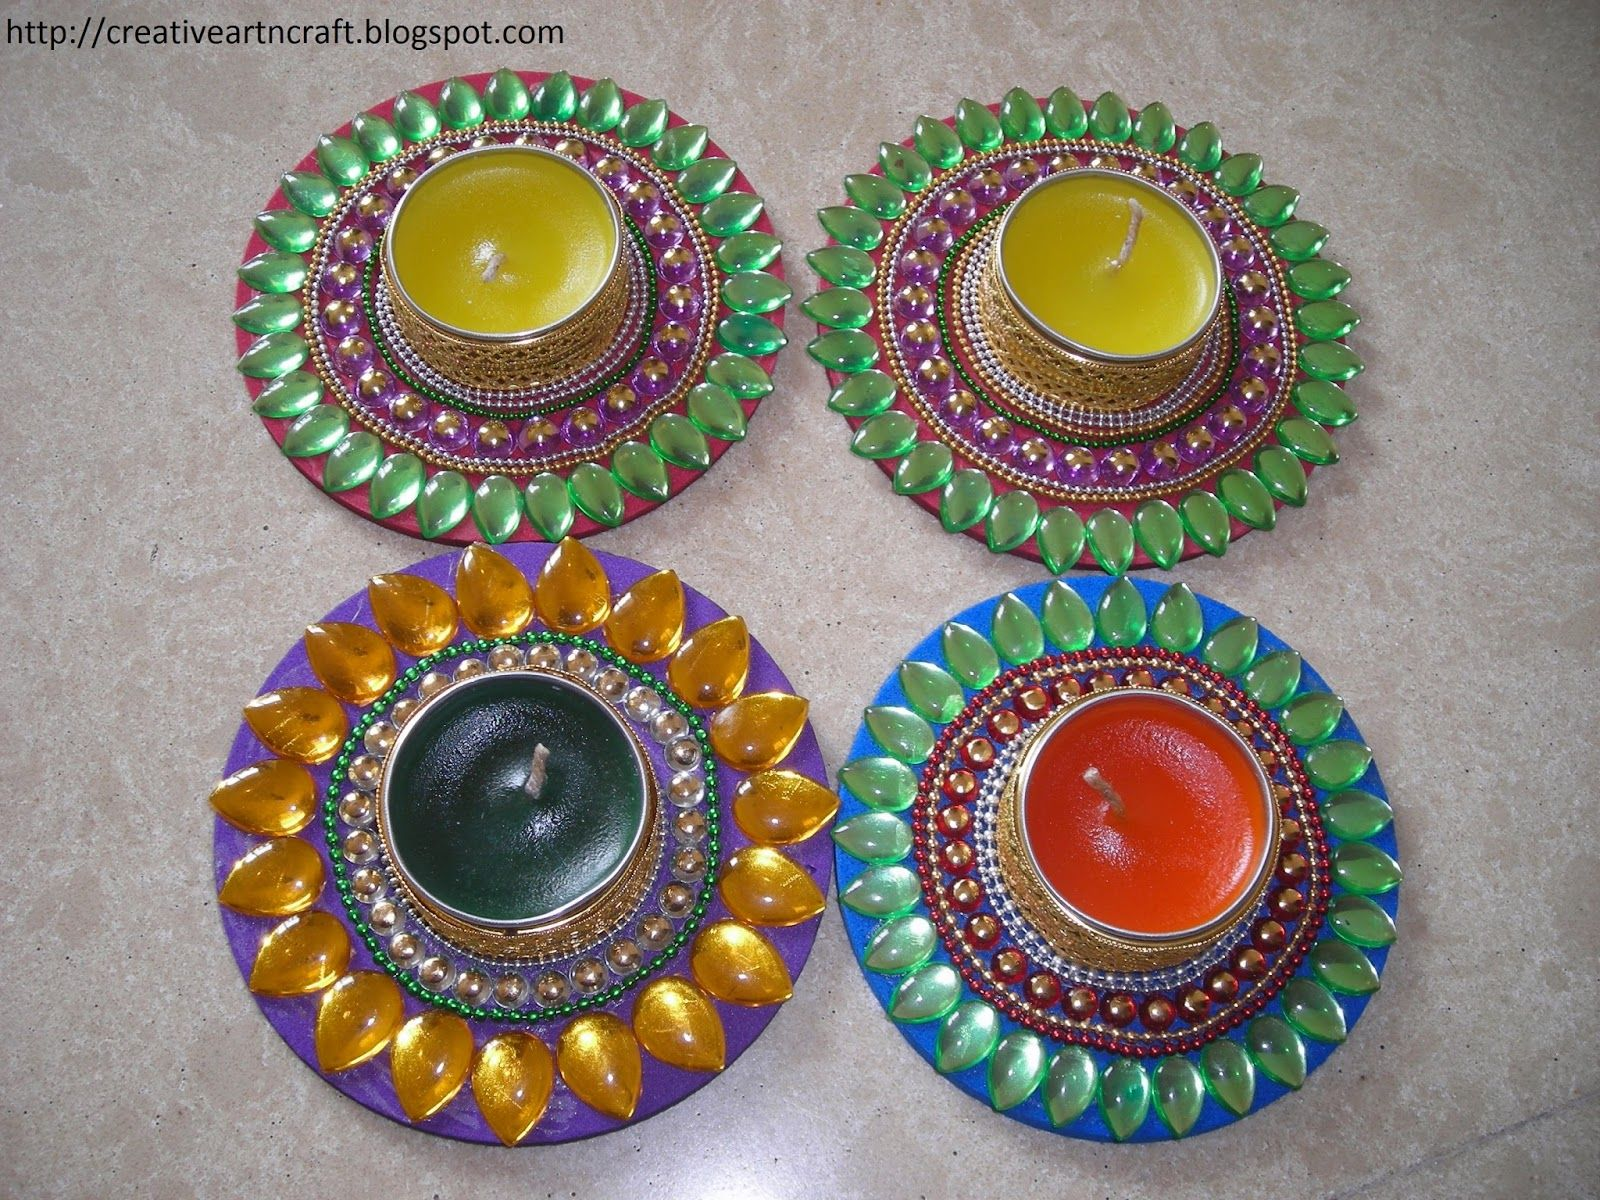 Decoraciones Sanz Crafting With Old Cds - Google Search | Diy | Pinterest